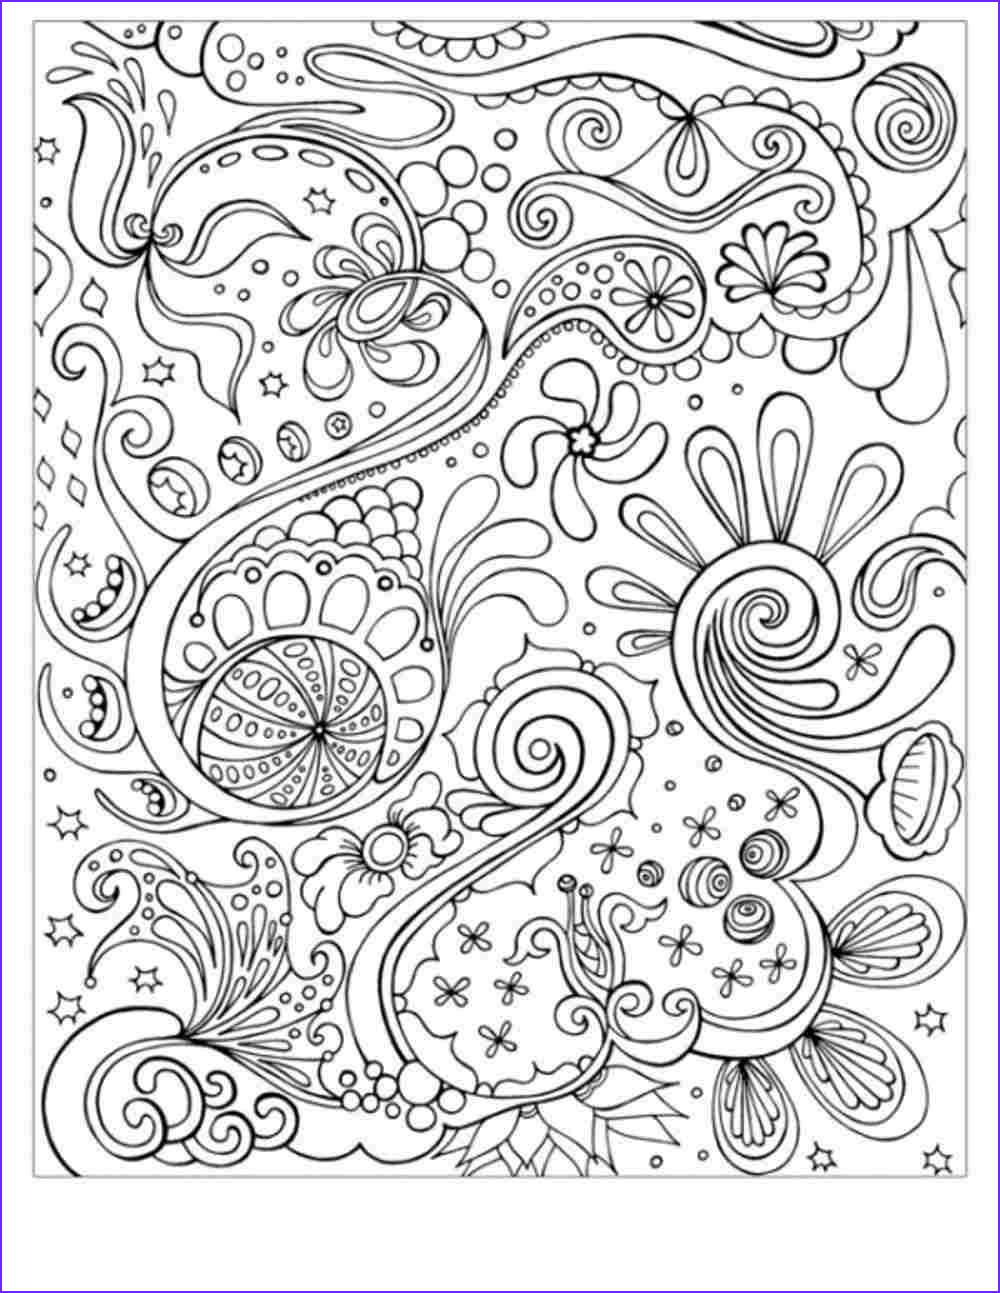 Abstract Coloring Pages for Adults Elegant Image Adult Coloring Pages Abstract Coloring Home